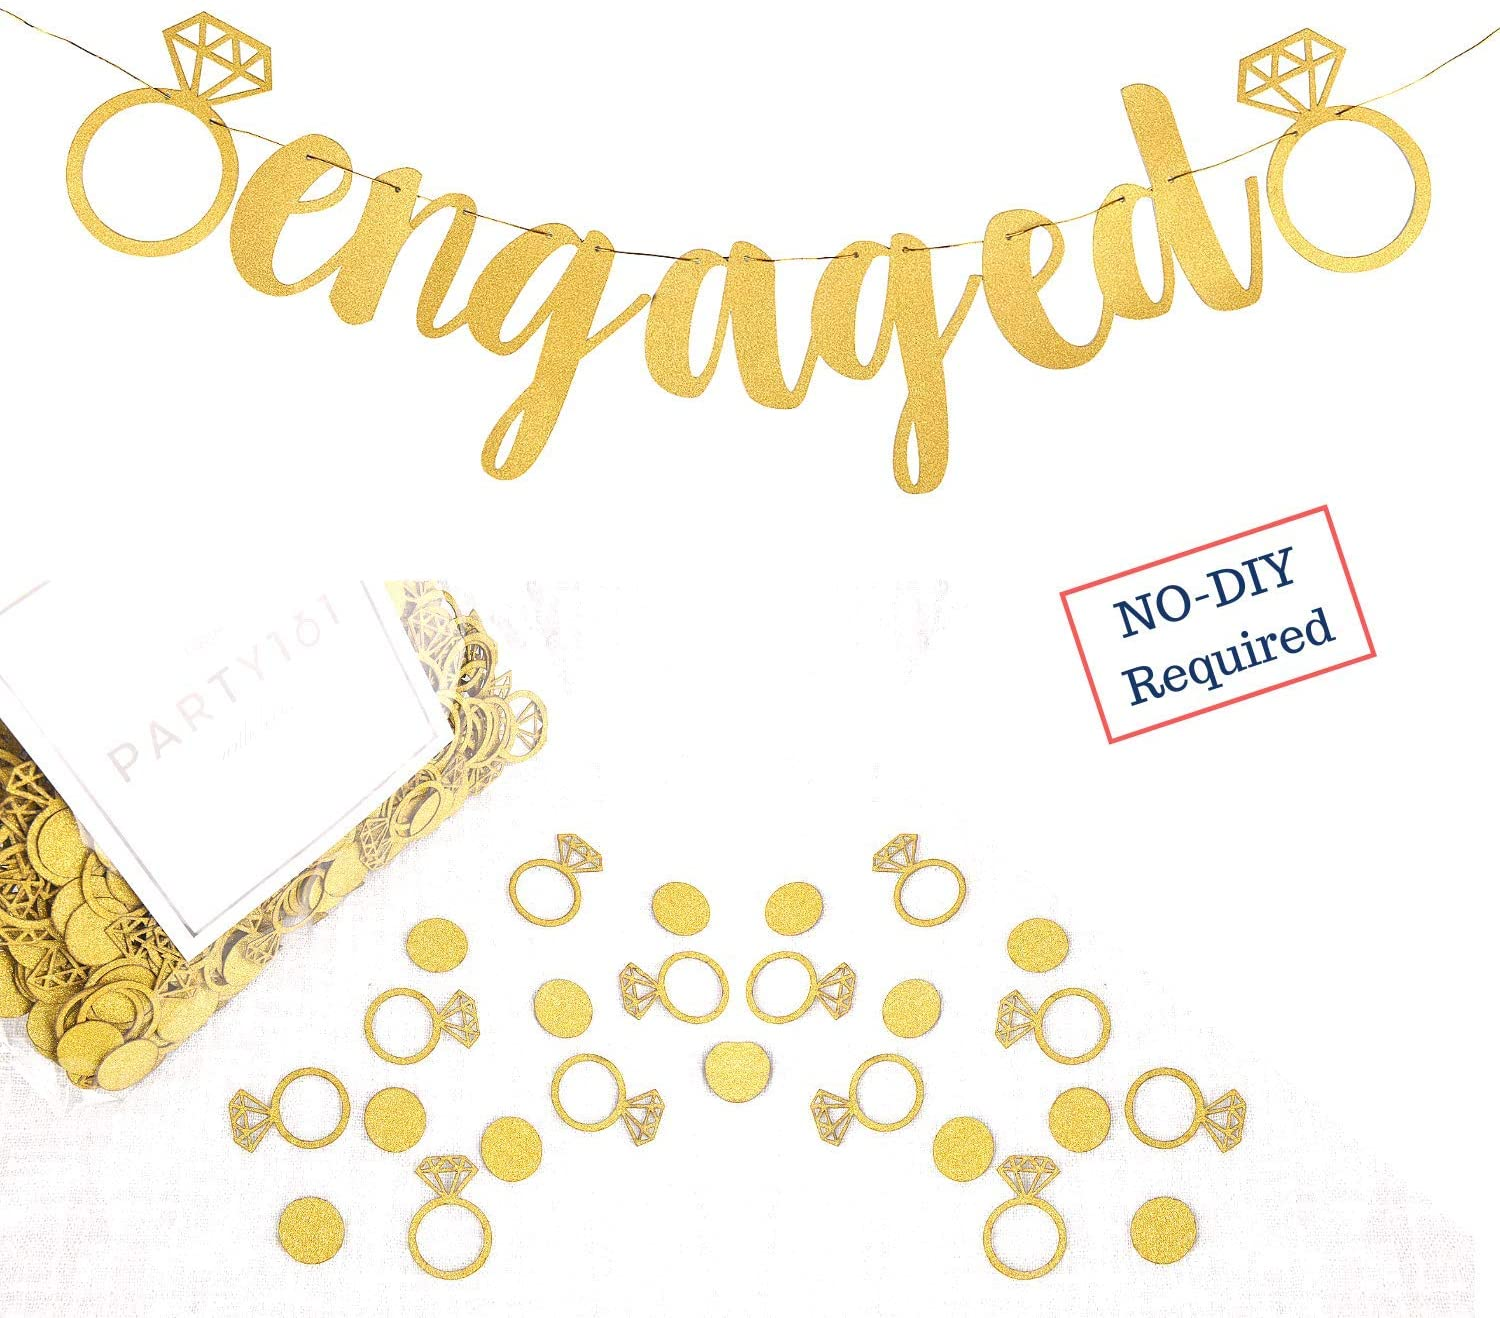 Engagement Party Decorations - Extra-Large Engaged Banner + 200 Glittering Gold Ring Confetti - Bridal Shower Sign & Bachelorette Party Favors - Bride to be Engagement Banner Decor (Gold)